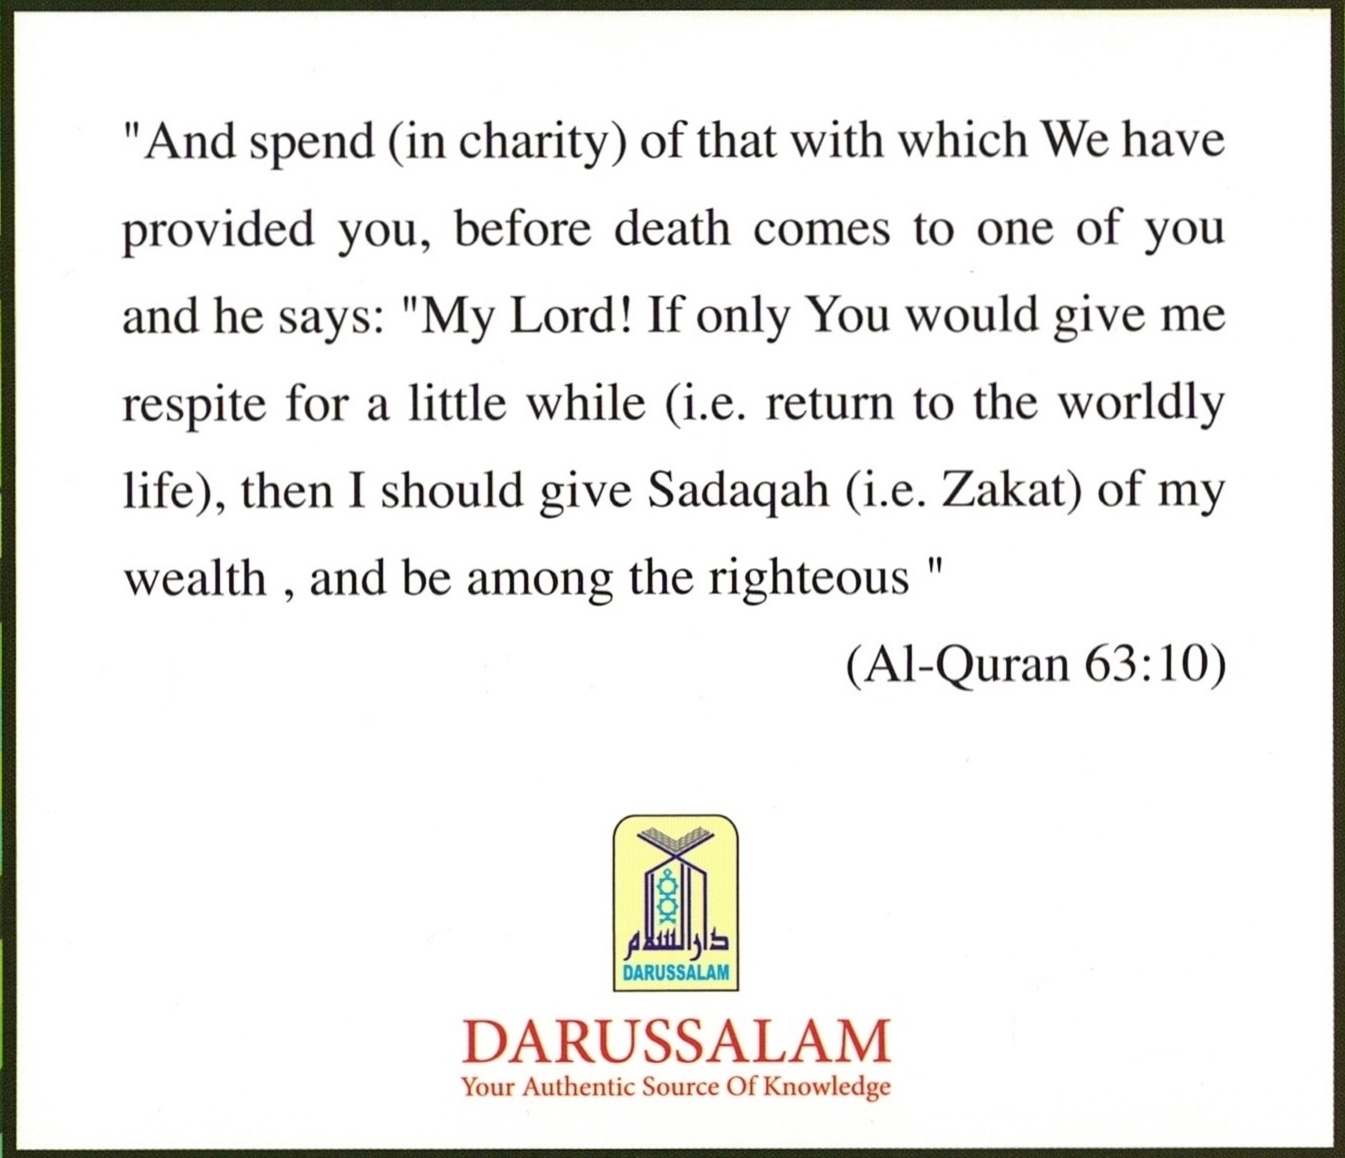 purify-wealth-by-paying-zakat-correctly-2-copy.jpg